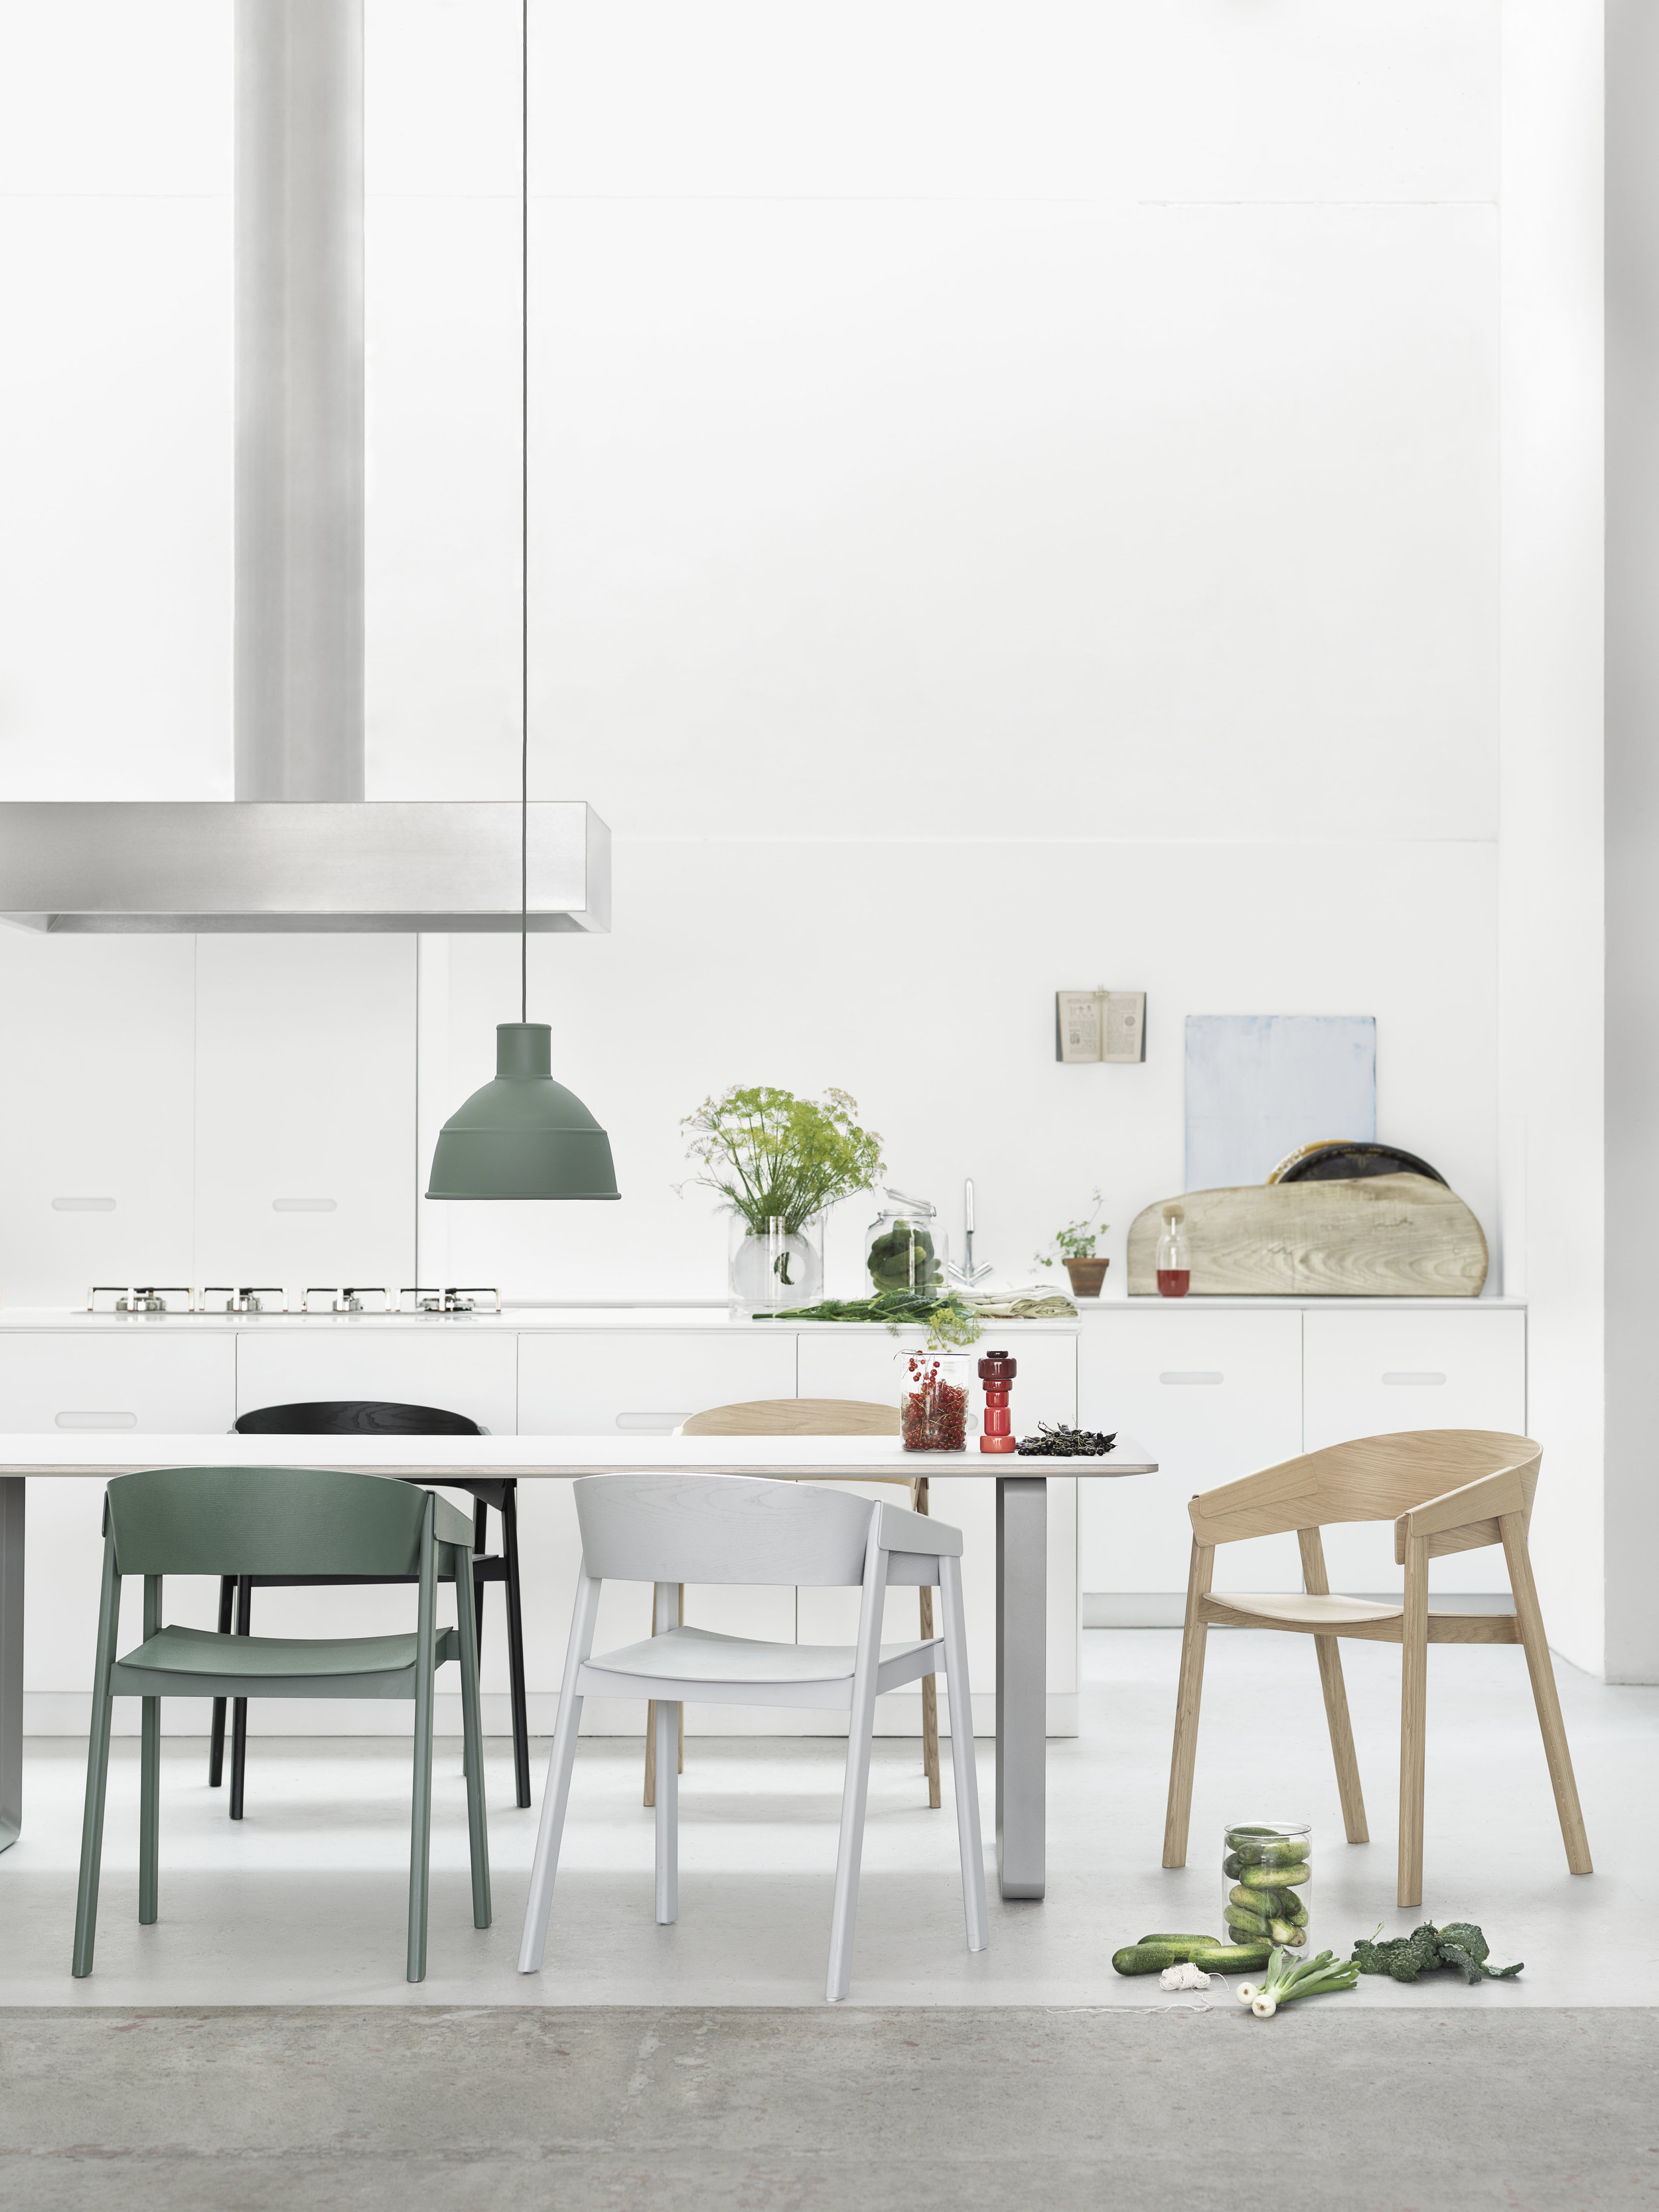 Cover_chair_kitchen_MED_RES.jpg